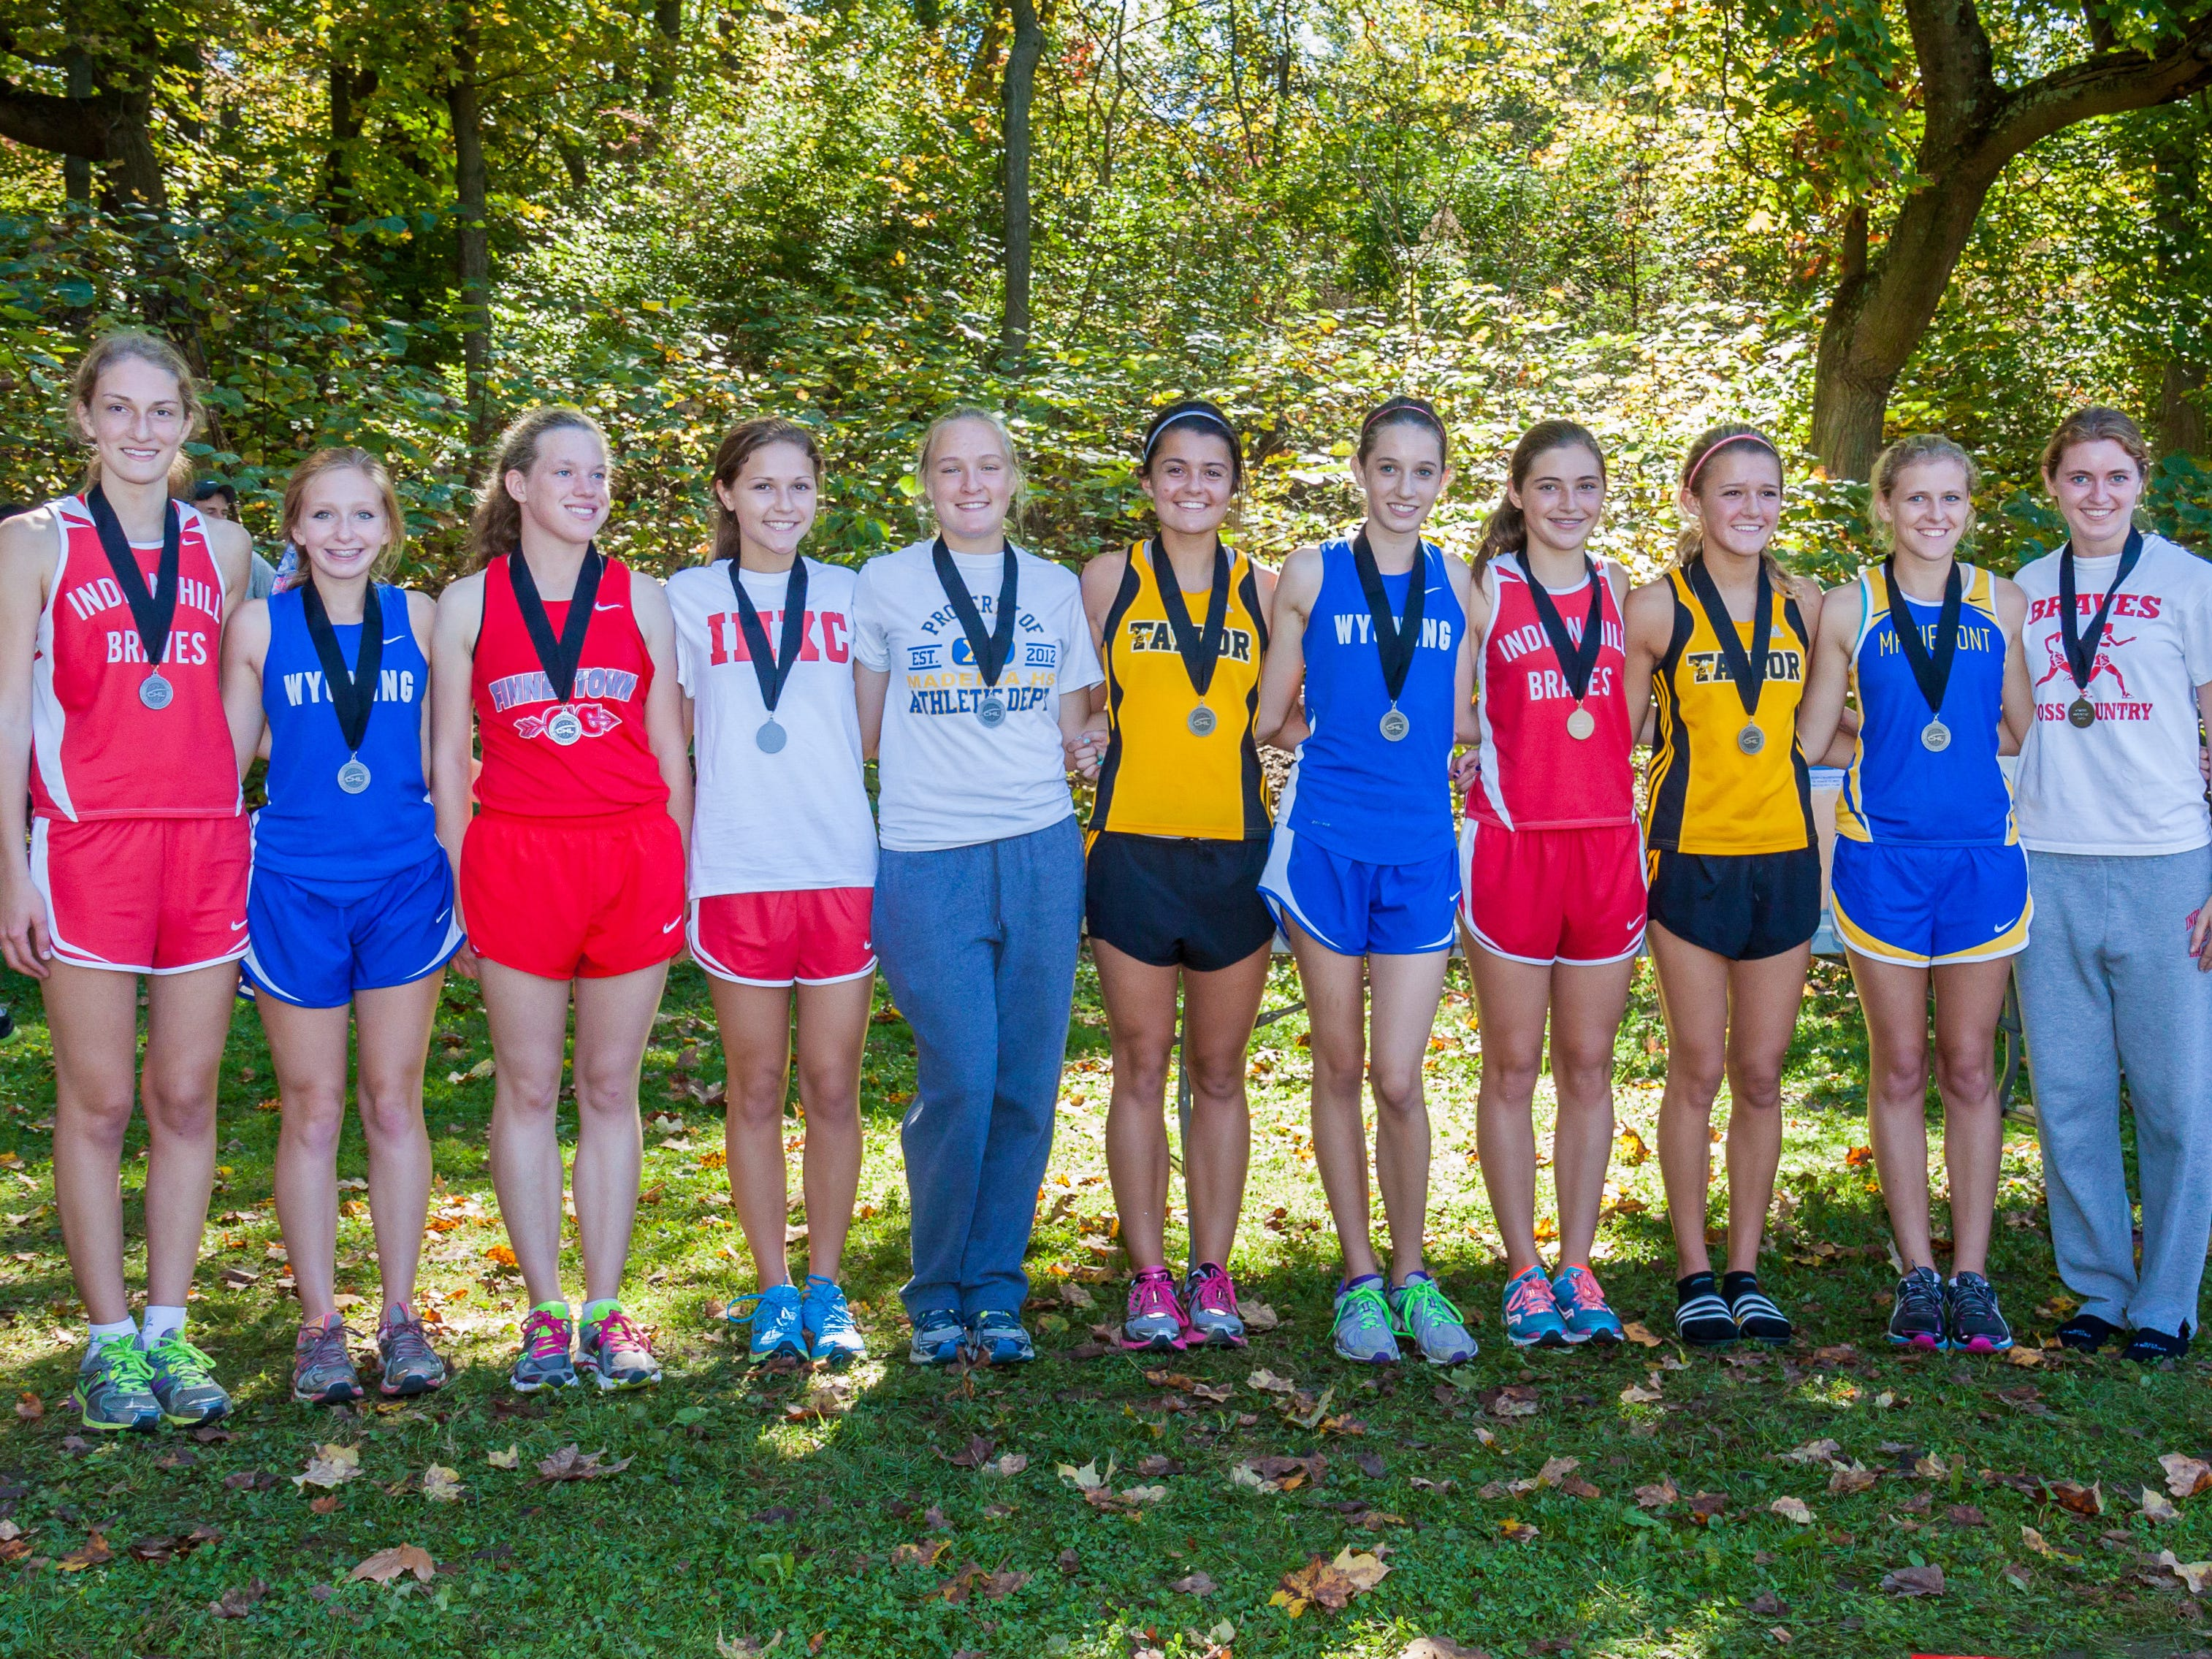 The Wyoming girls cross country team finished second at the Cincinnati Hills League Championship last October at Sharon Woods. Making top-10 finishes for the Cowboys were Terra Forsythe (fifth from right) and Whitney Elsass (second from left).